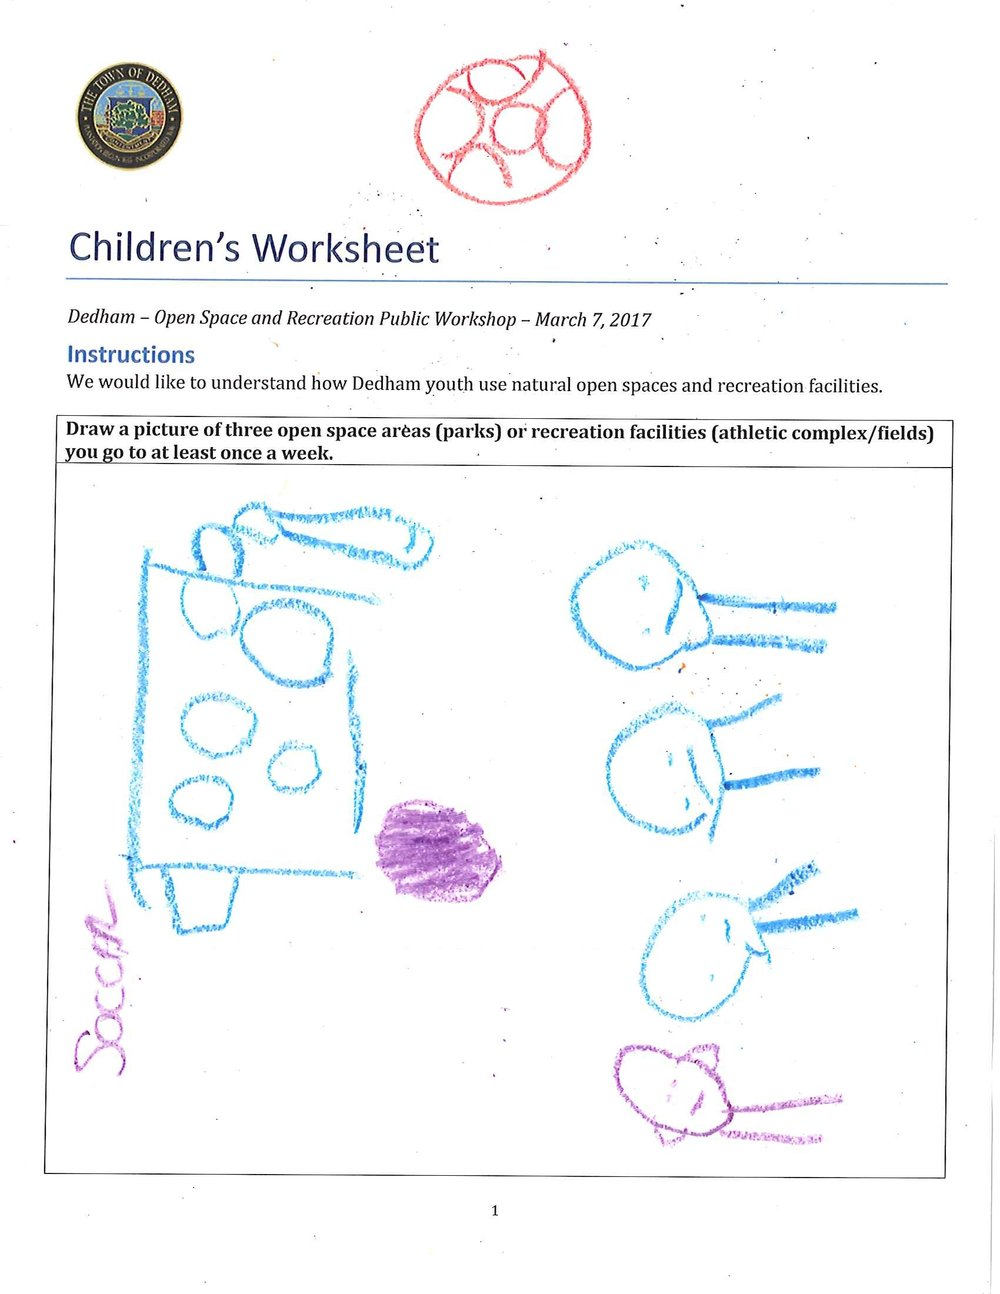 Children's Drawings_Page_1.jpg